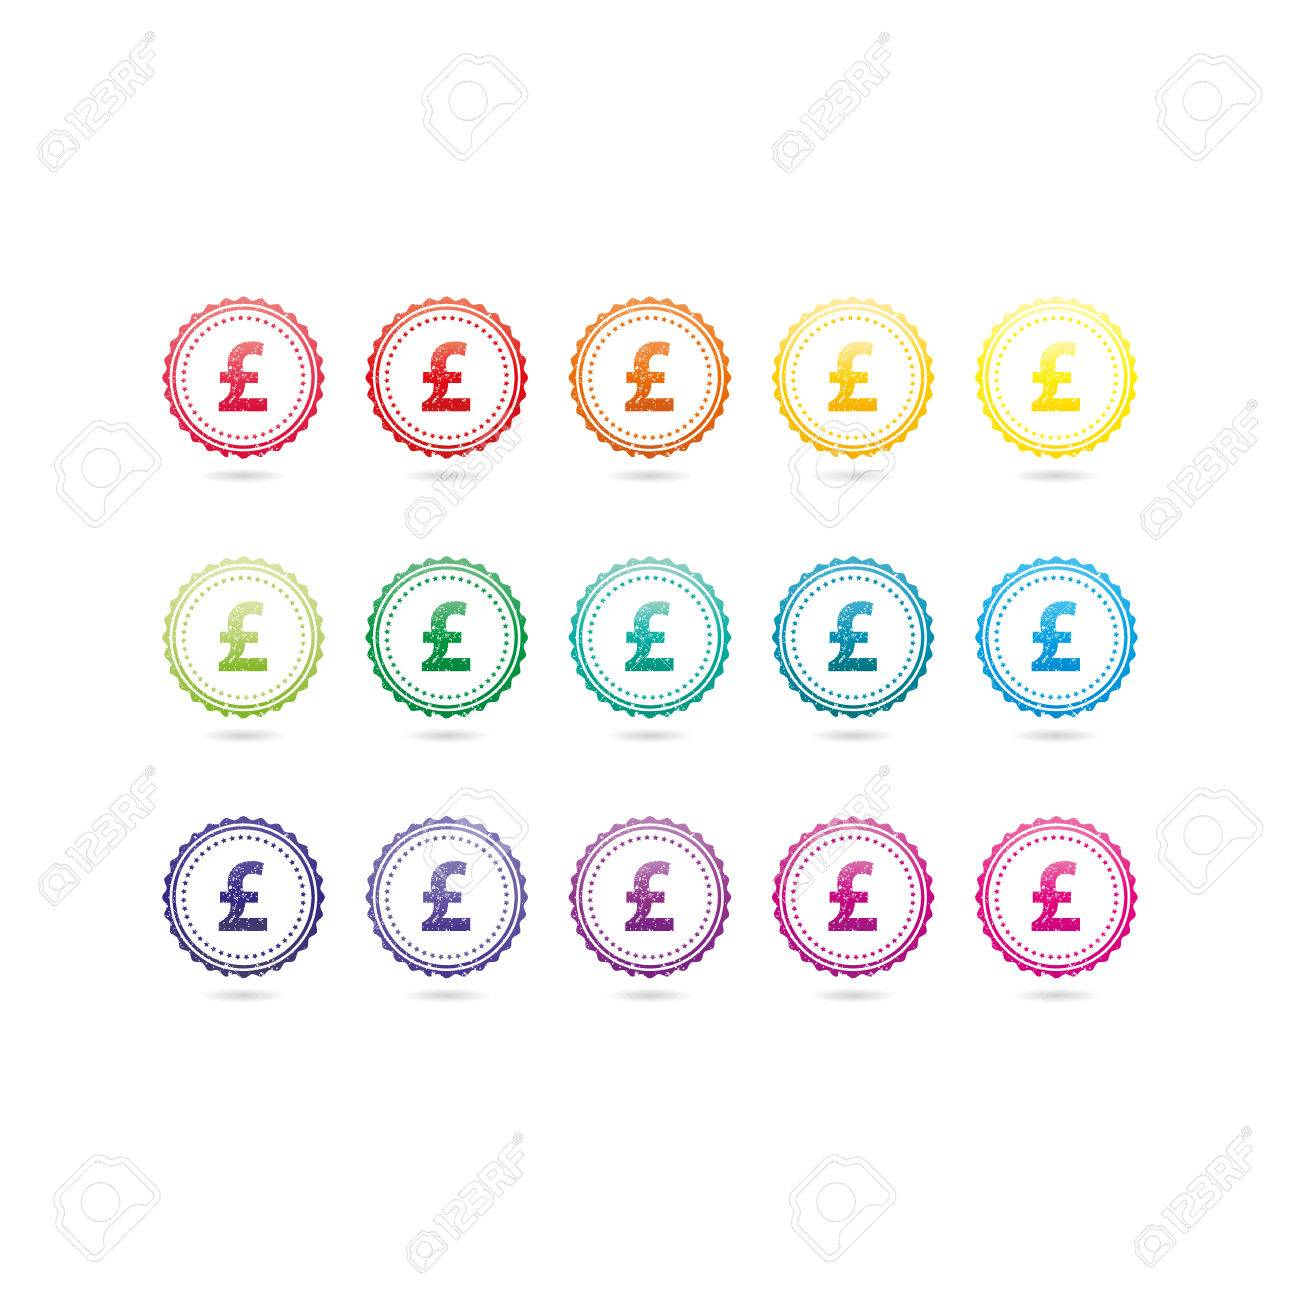 British pound sterling currency grunge symbols. Colorful hipster style stamp badge signs. Vector illustration graphic template isolated on white background. - 46791305